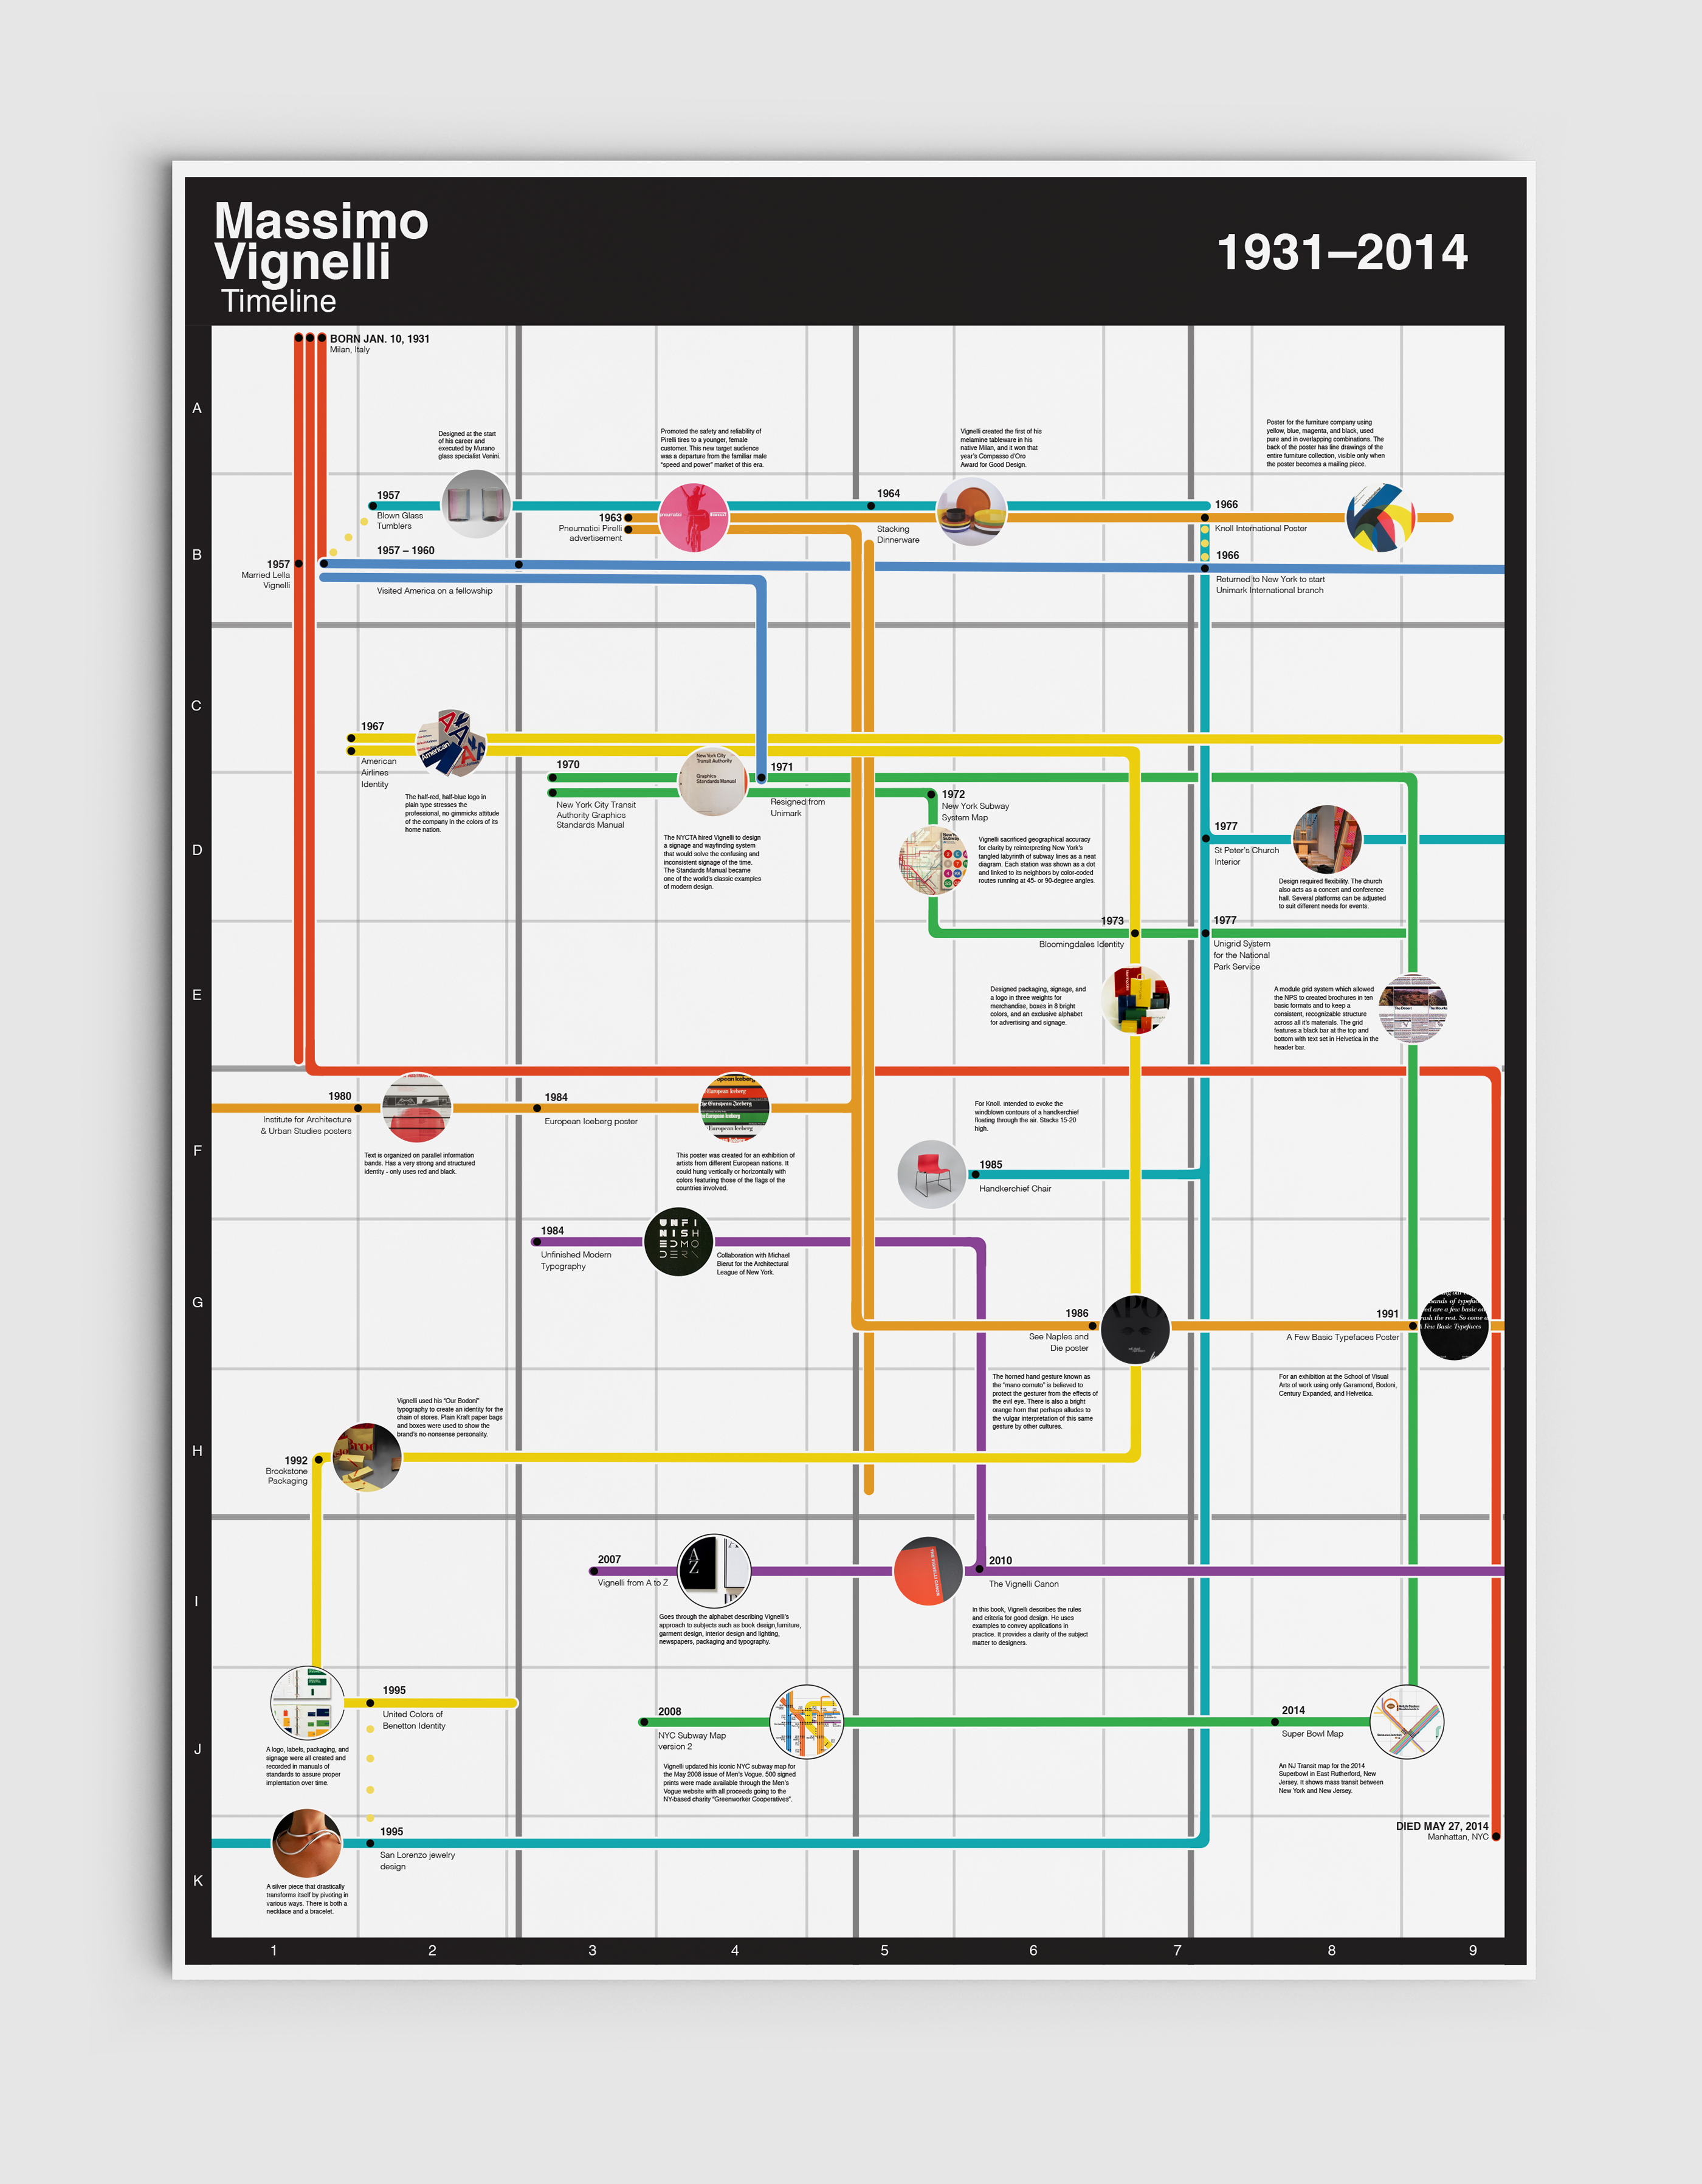 Vignelli Subway Map Pdf.Massimo Vignelli Timeline On Behance Massimo Vignelli Massimo